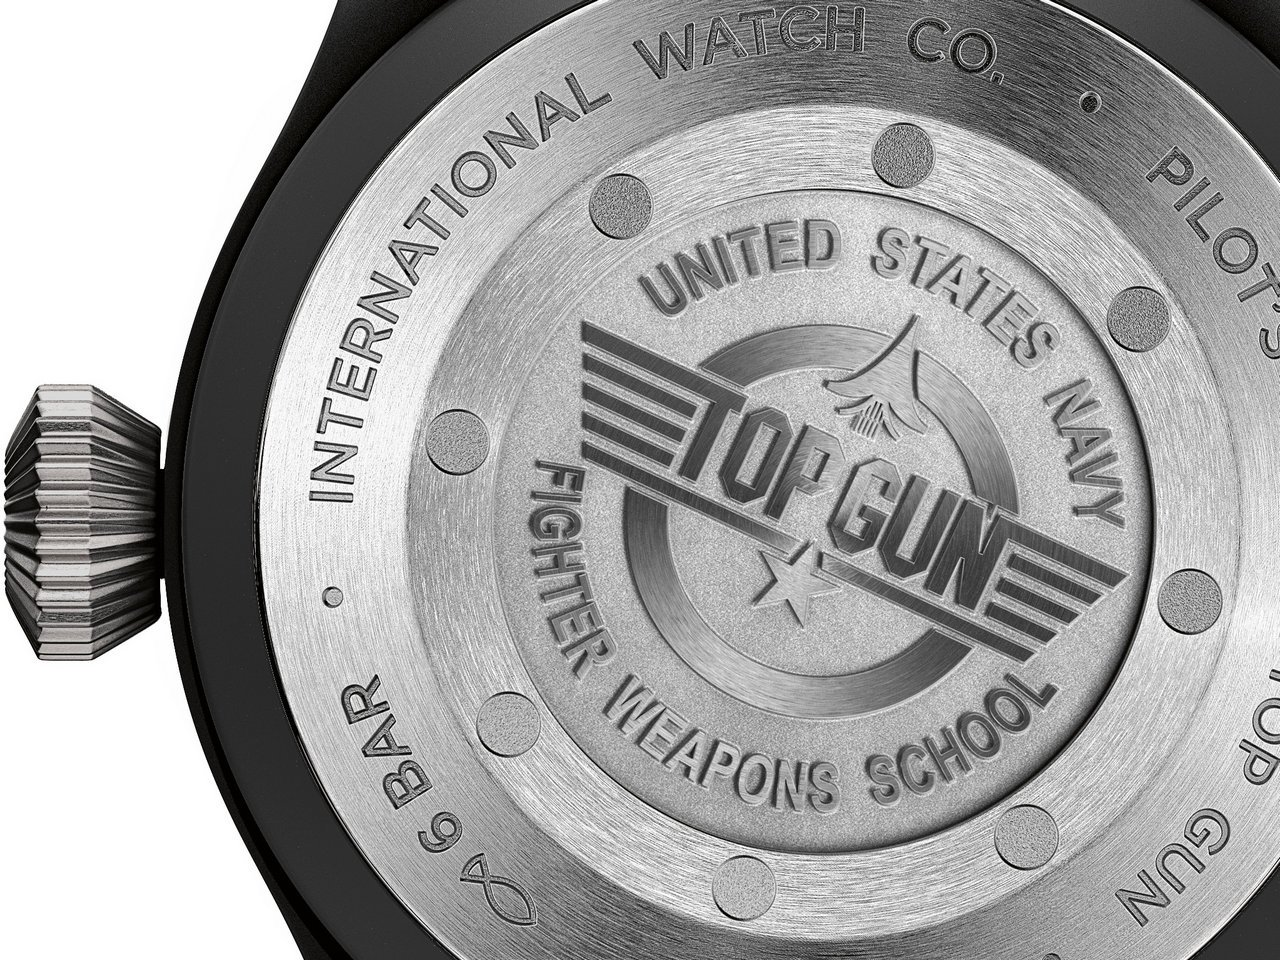 SIHH-2016-IWC-Big-Pilot-Watch-TOP-GUN-IW502001-0-100_4